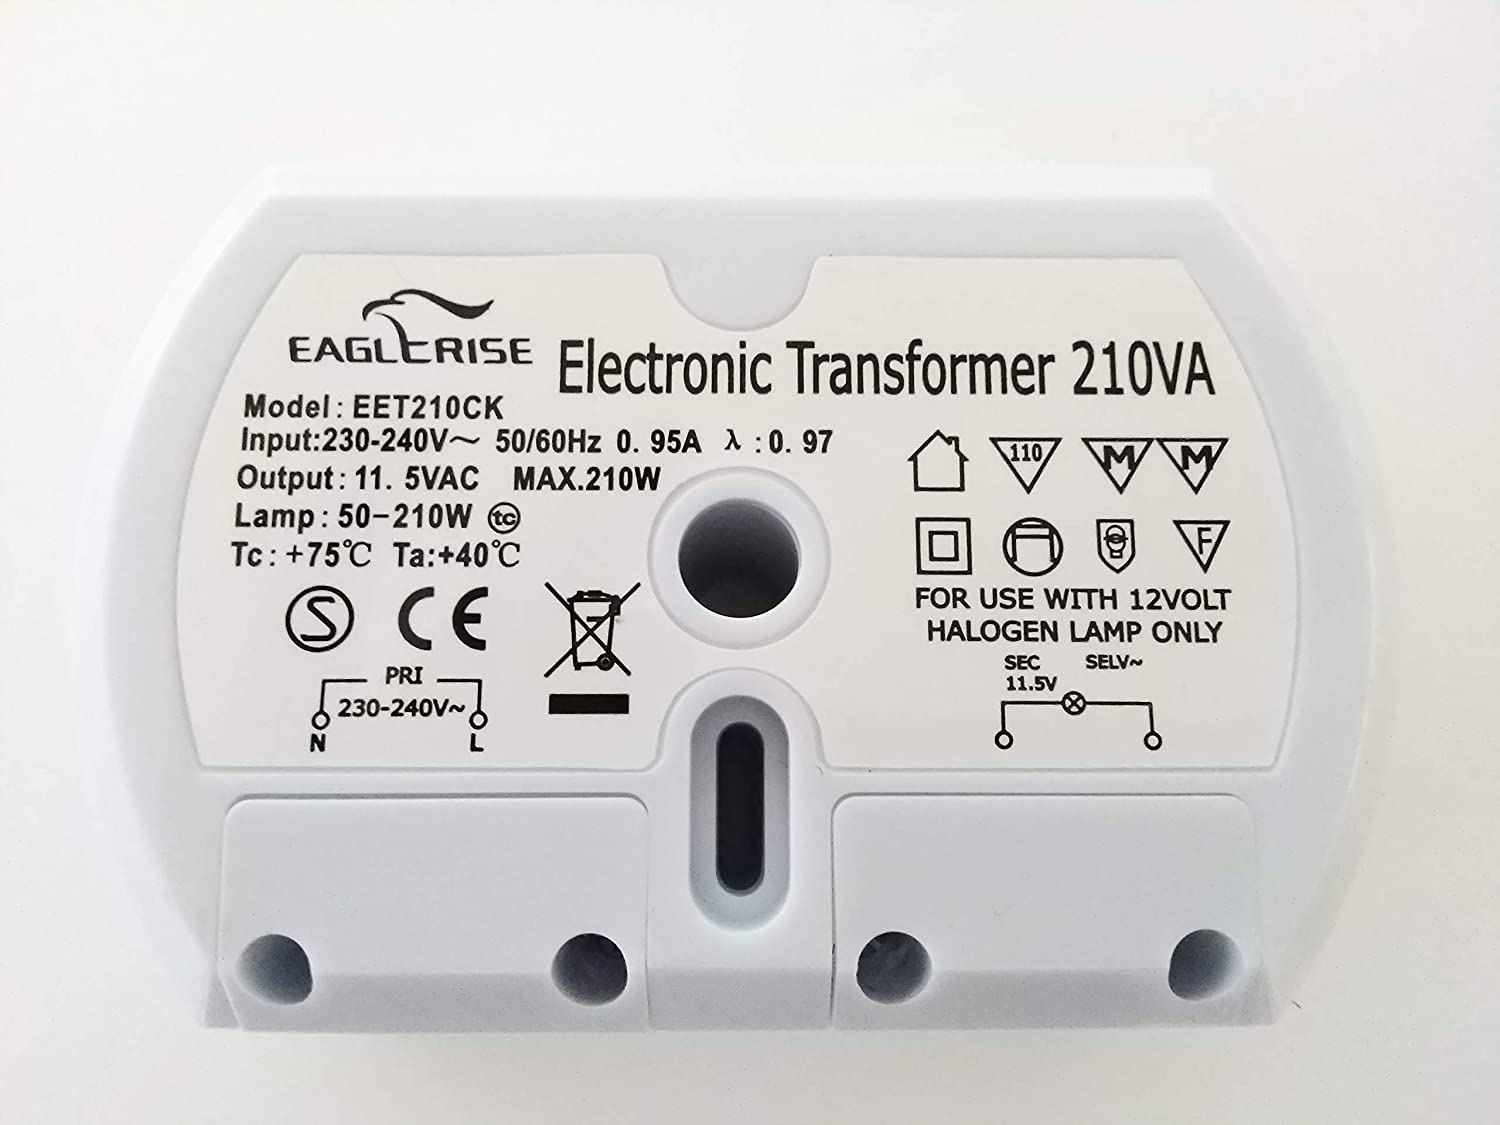 EAGLERISE SET150CS ELECTRONIC TRANSFORMER - FREE UK P+P   - 2 YEAR GUARANTEE   by CS Range